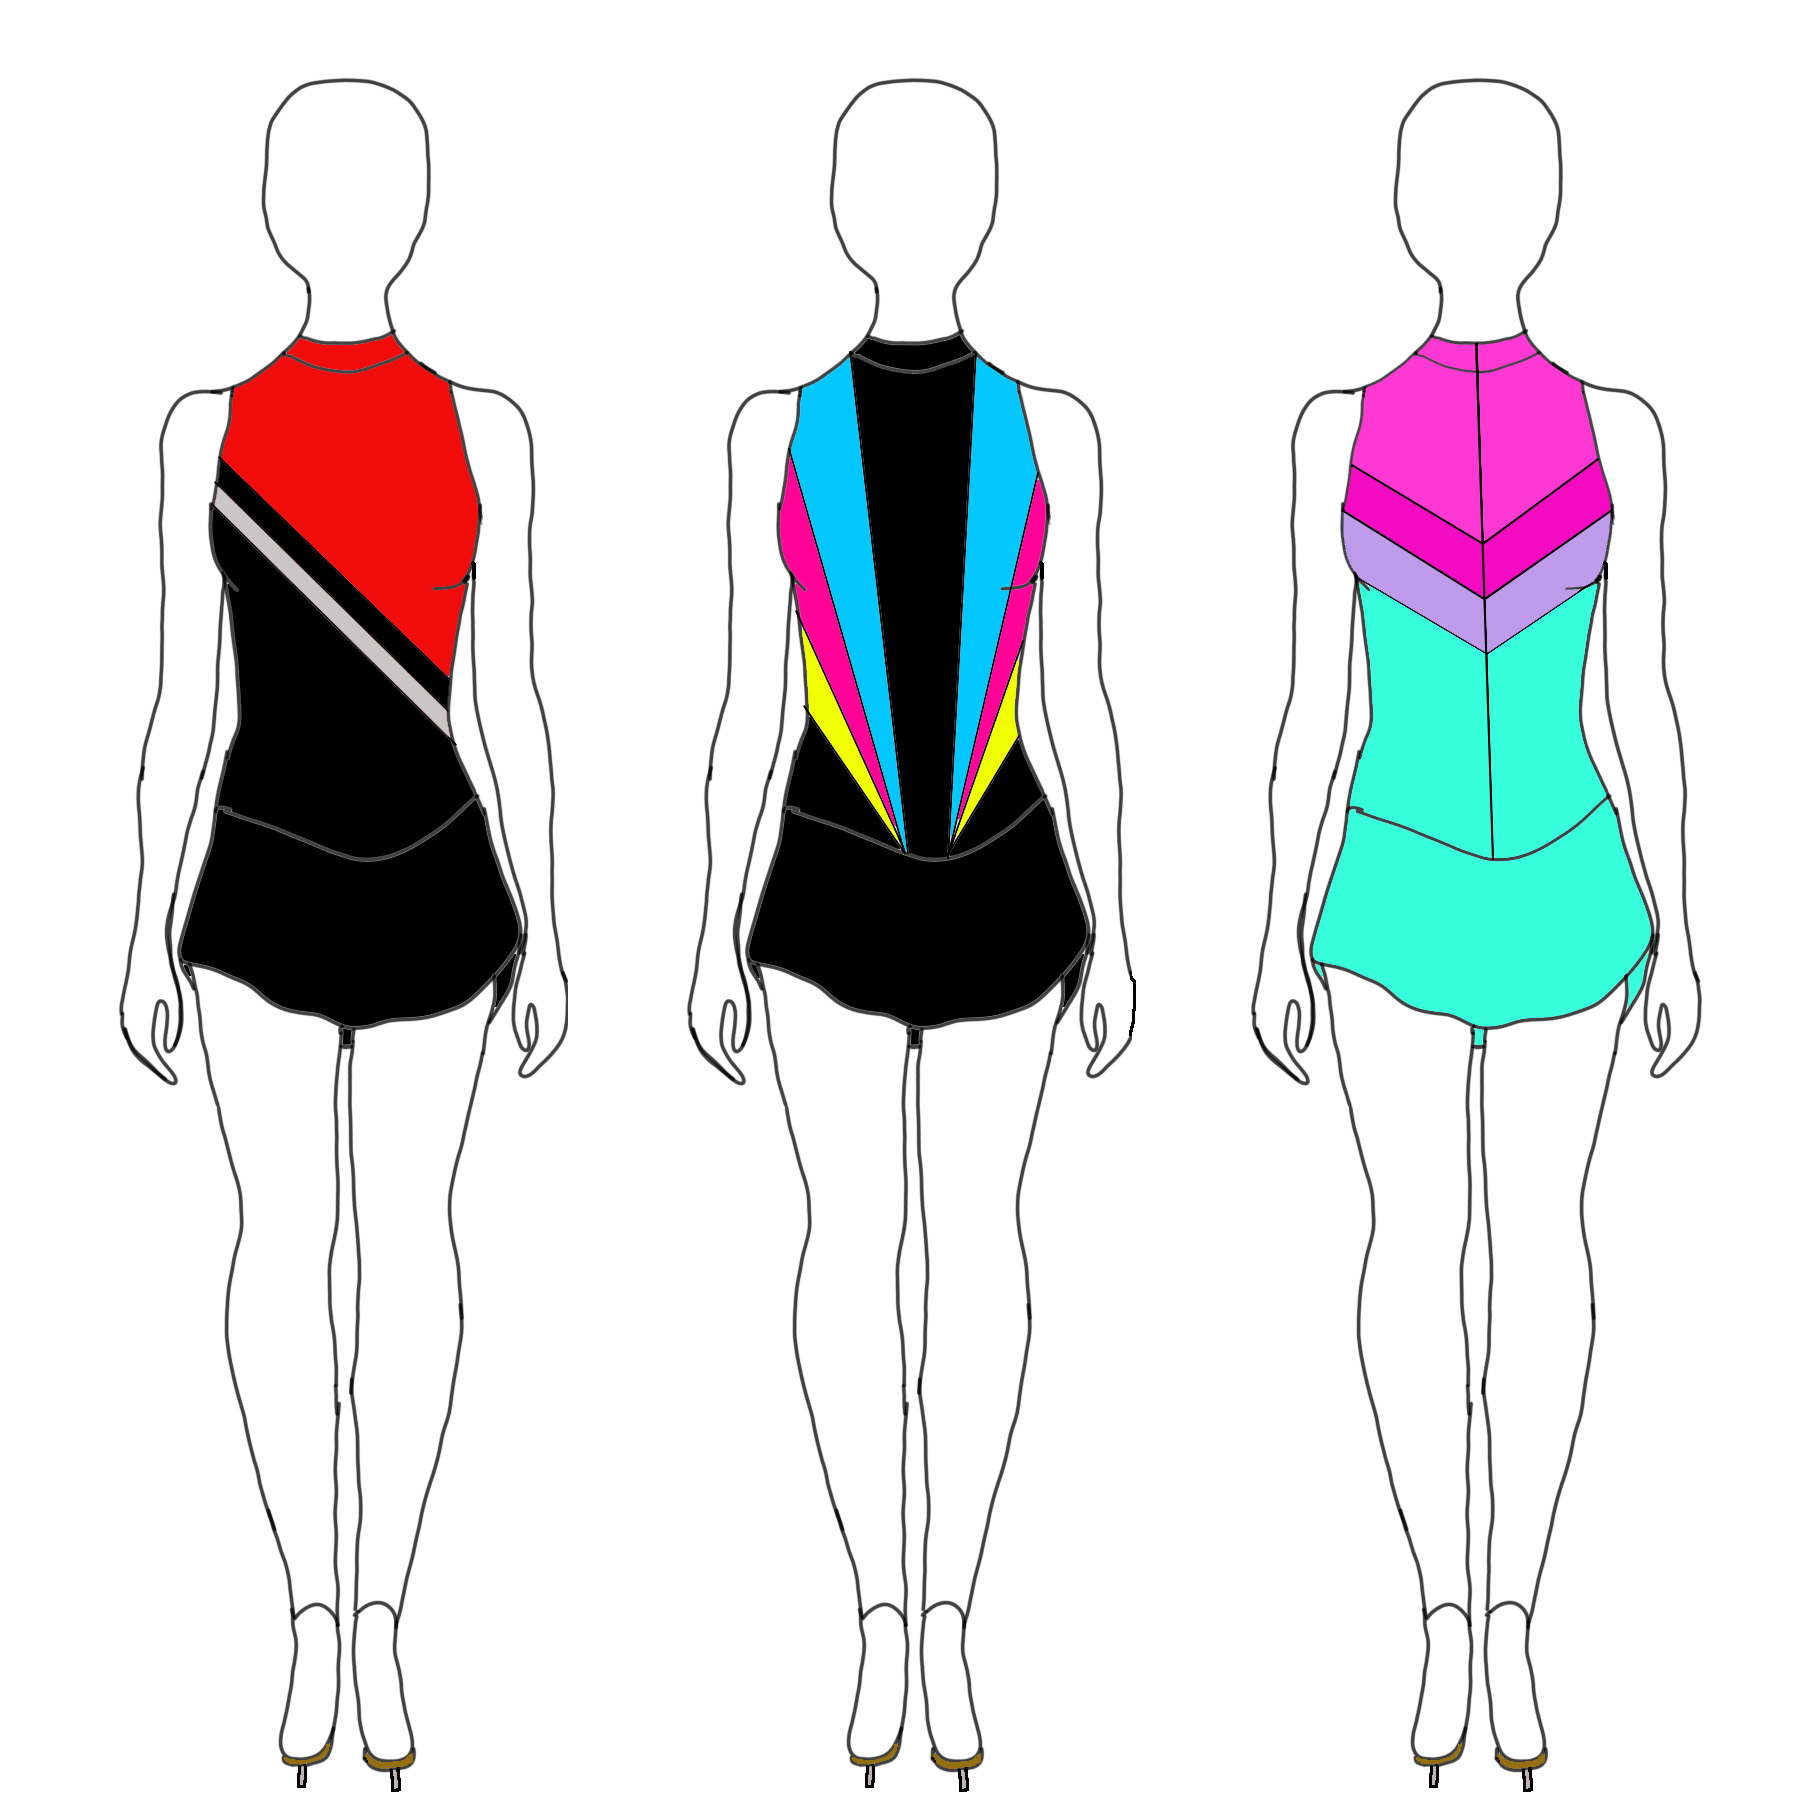 3 sketches of brightly coloured skating dresses.